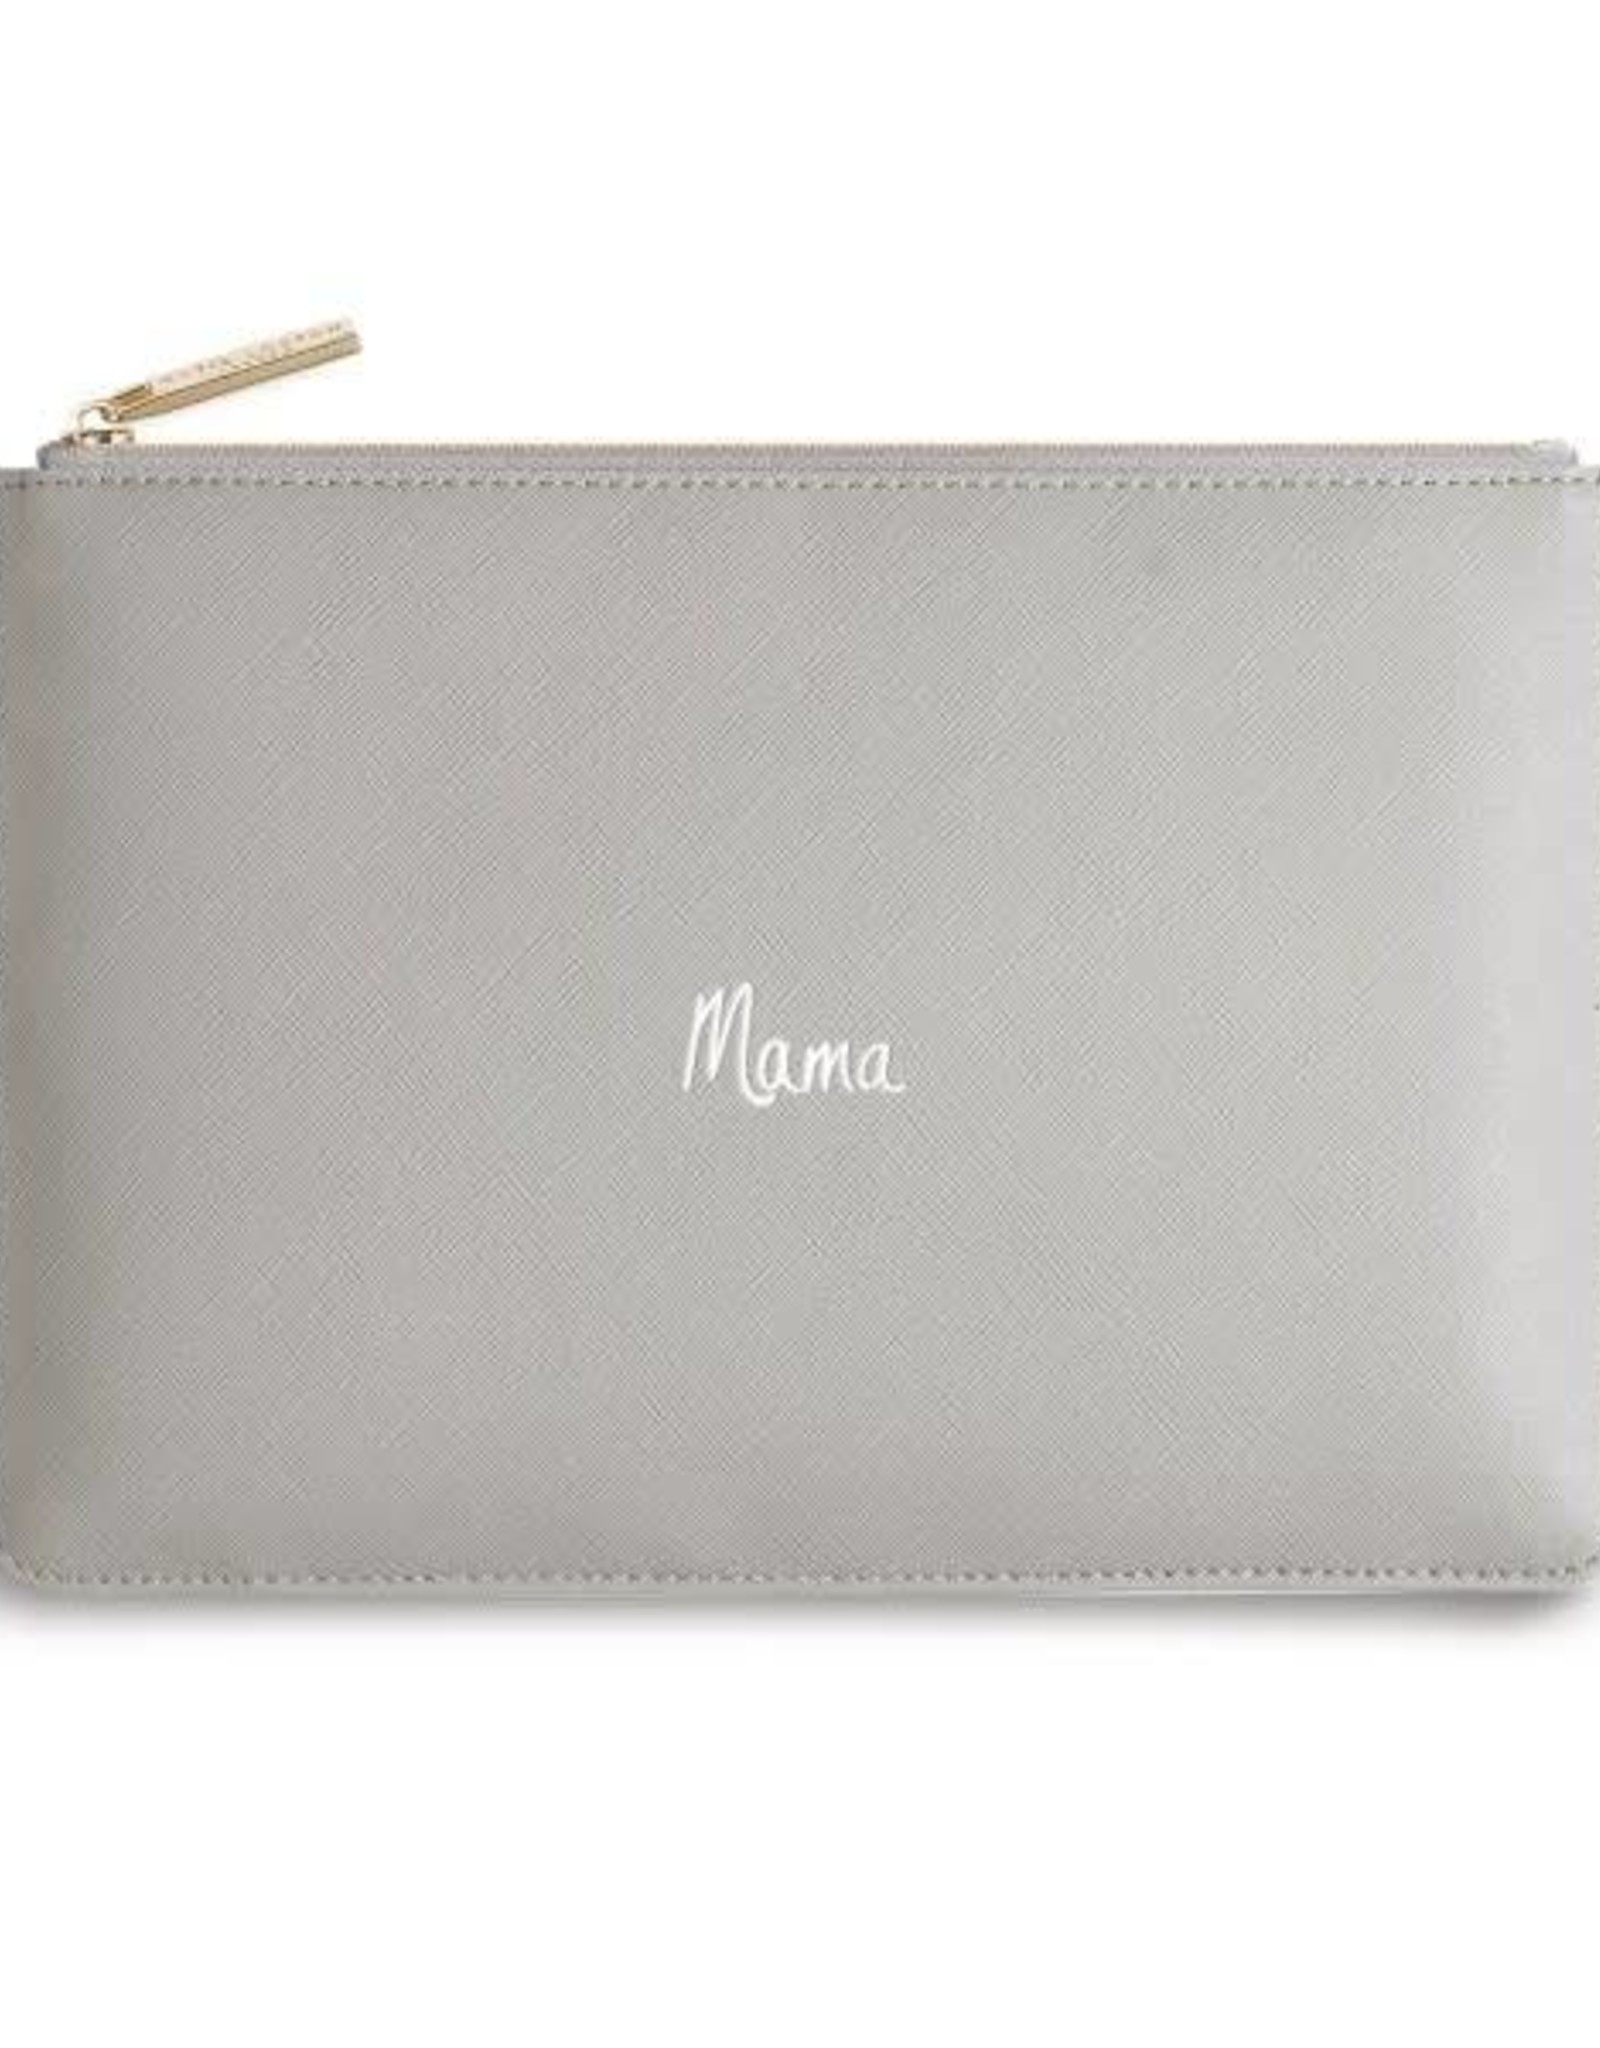 Perfect Pouch - Mama